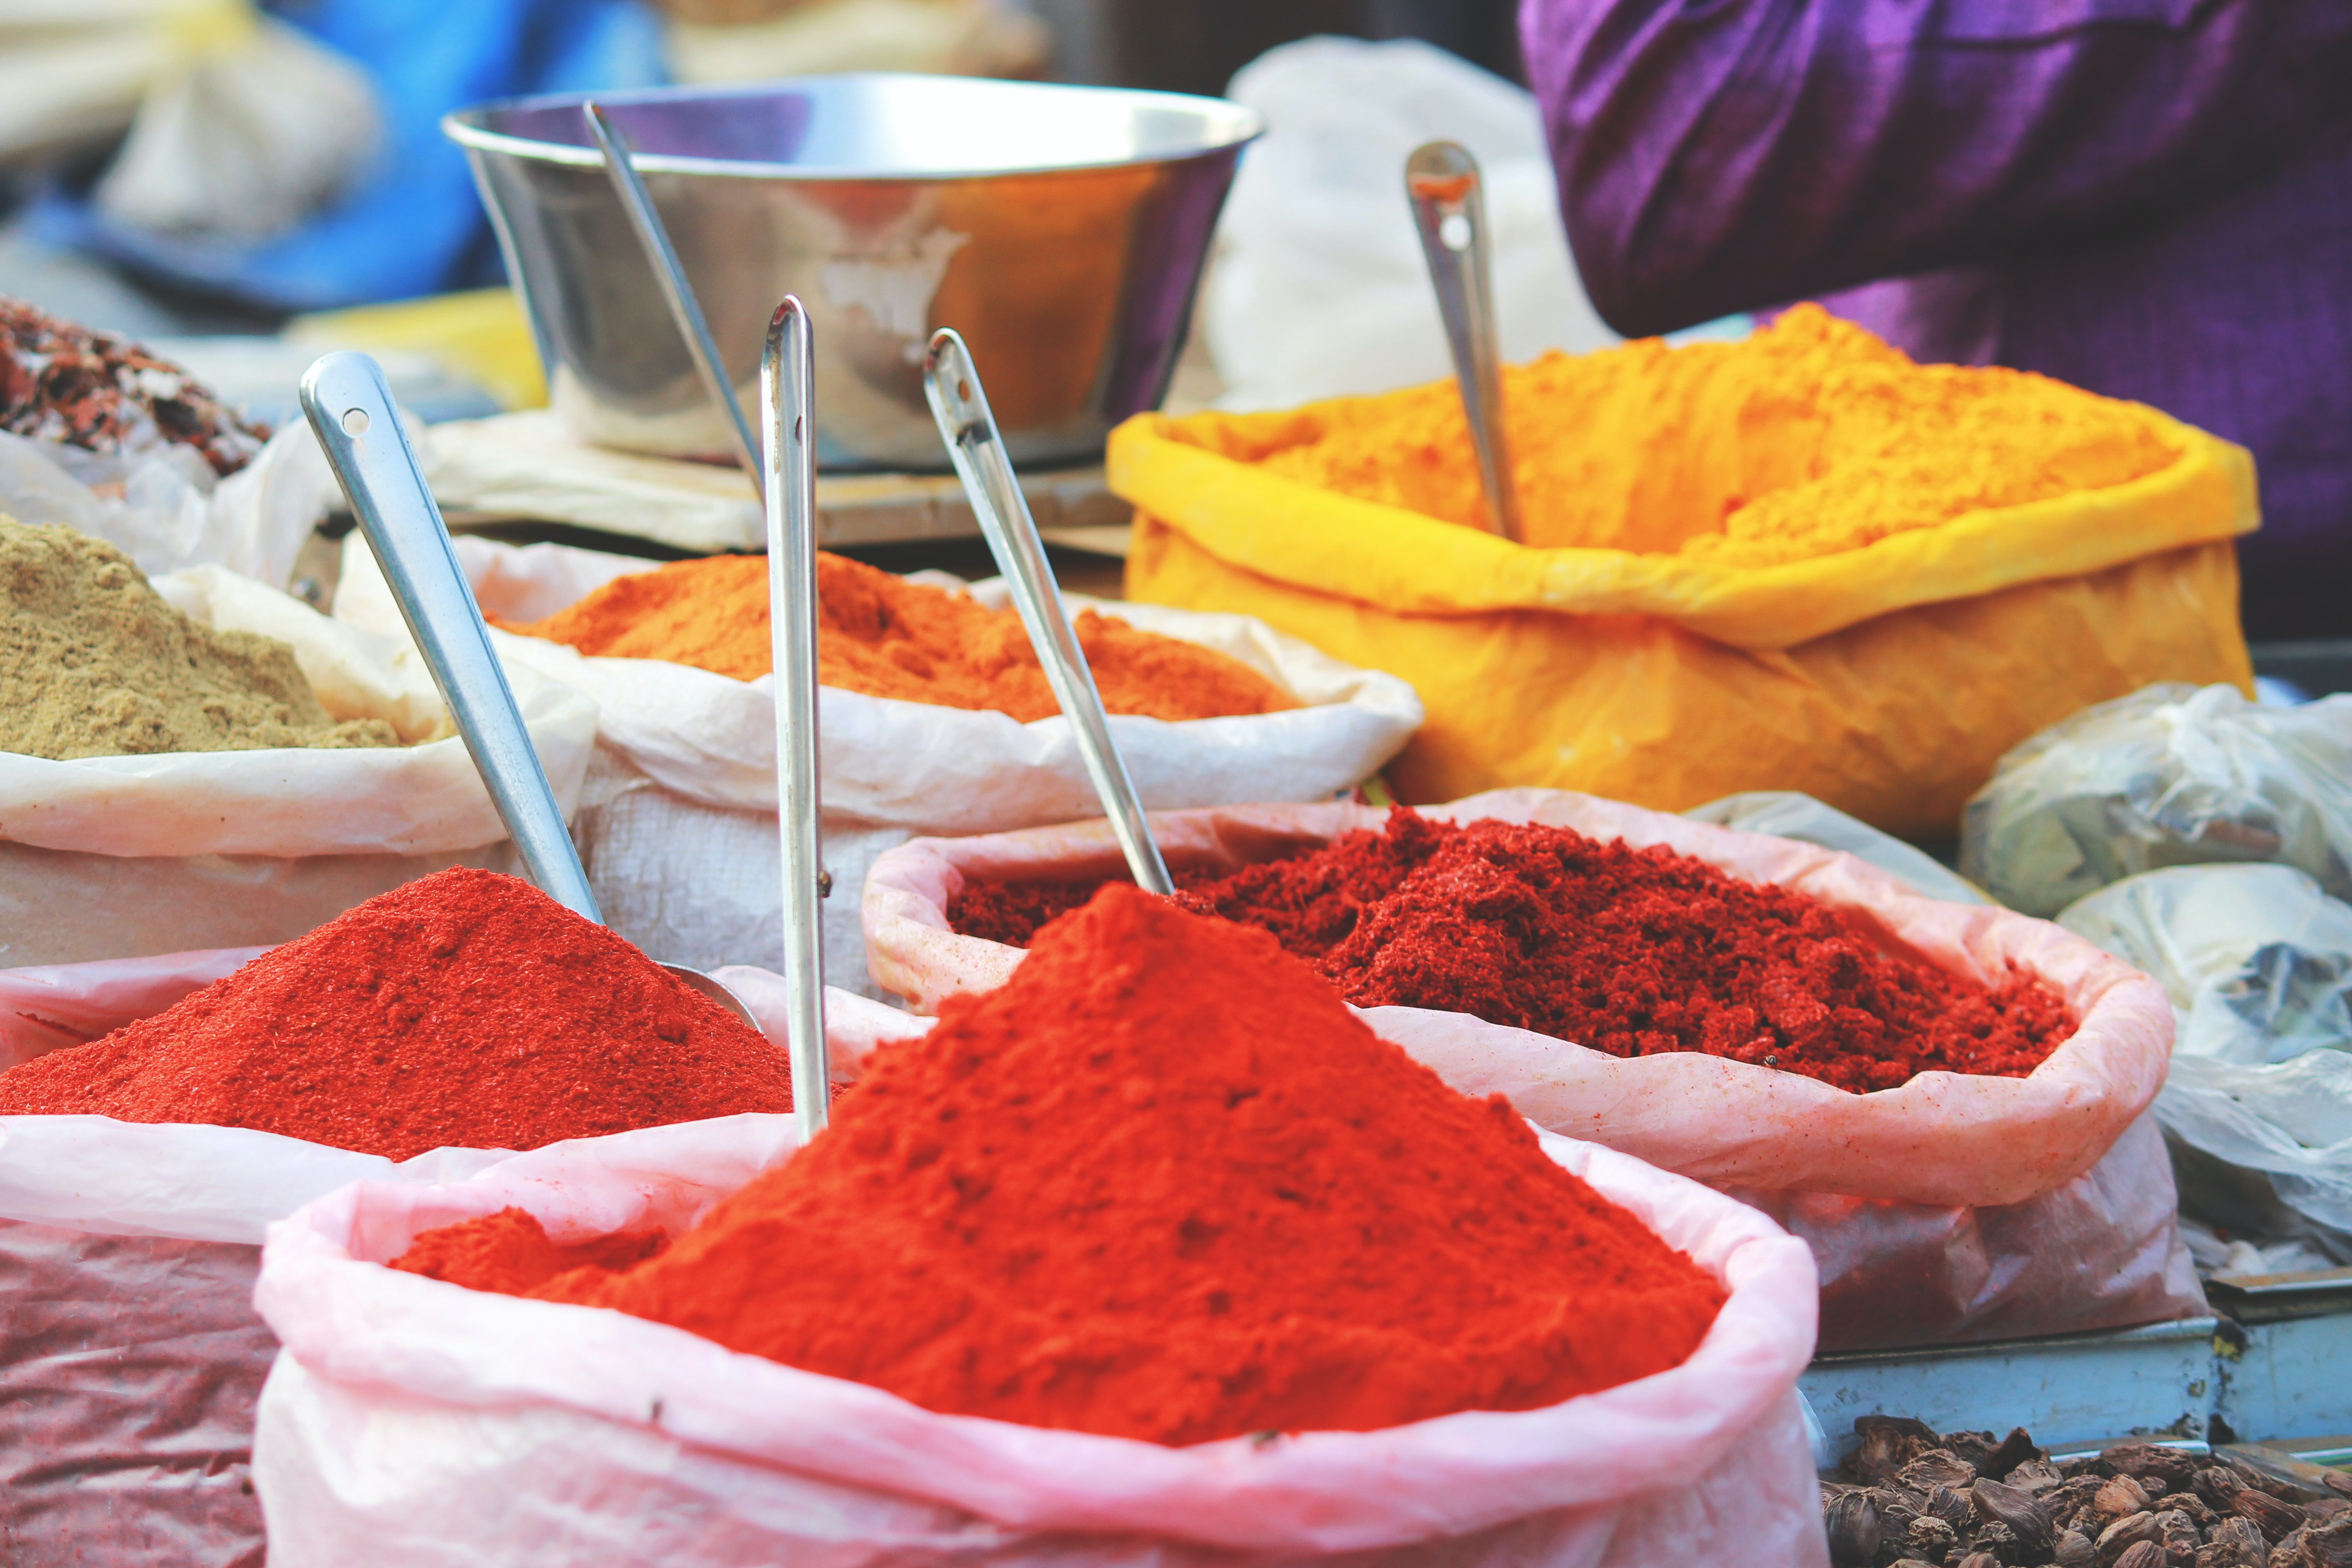 Red, tan, yellow, and orange spices in plastic bags with scooping spoons in a marketplace